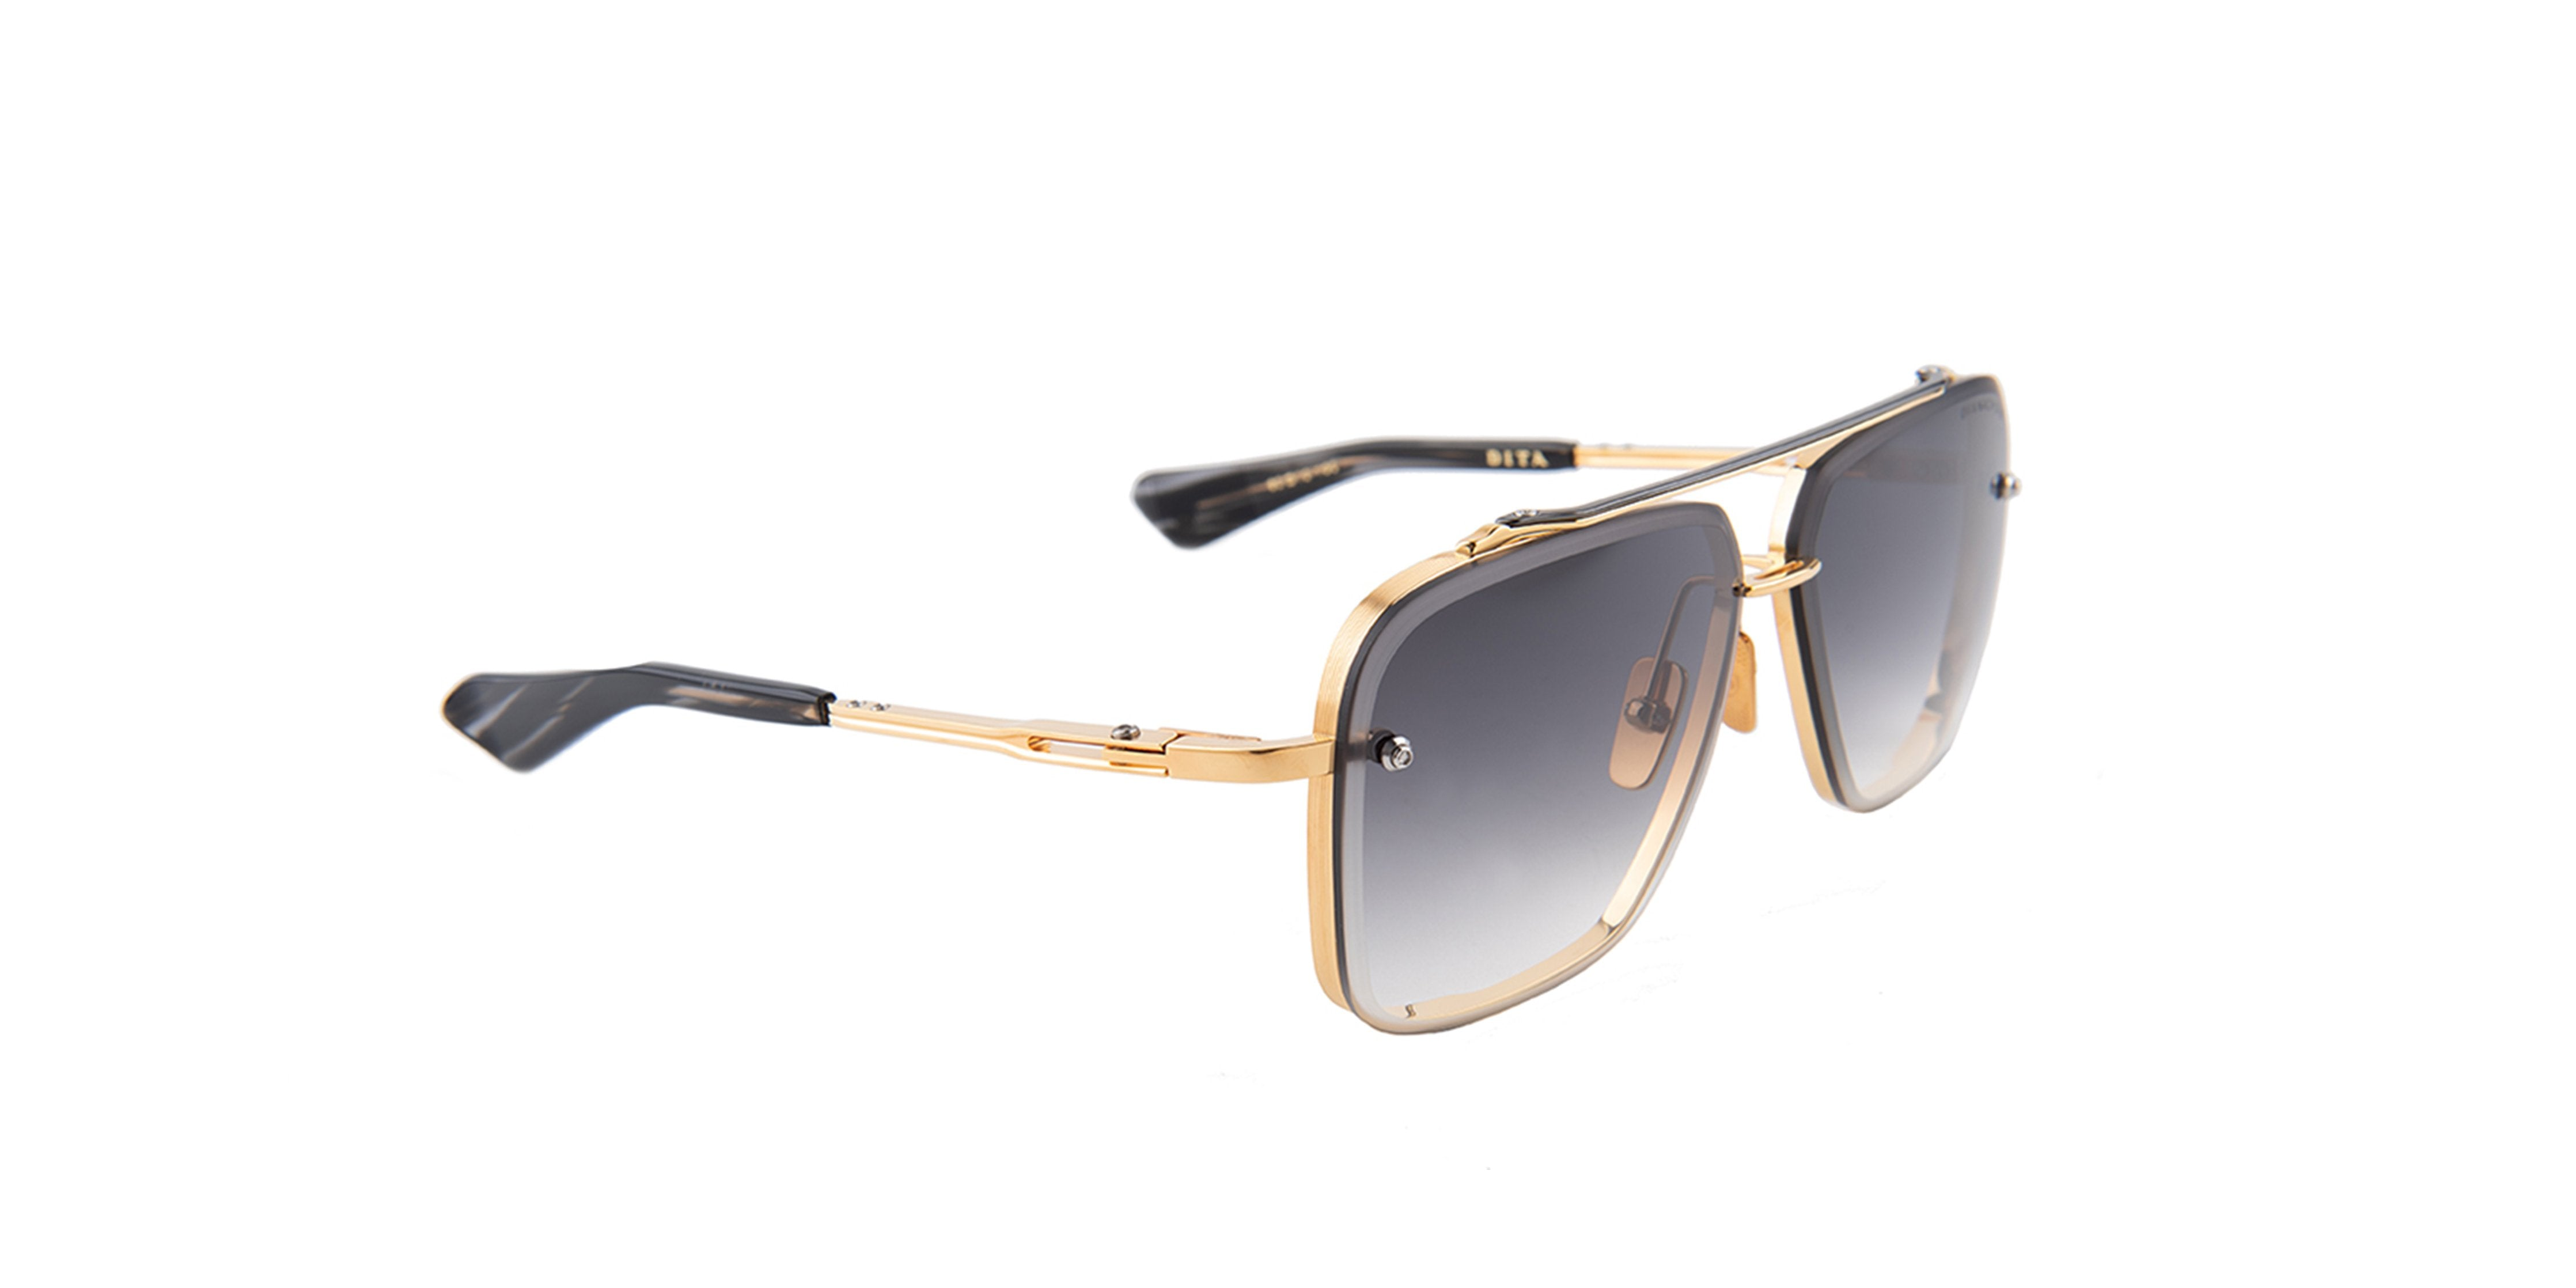 Dita - Mach-Six Gold Square Men Sunglasses - 62mm-Sunglasses-Designer Eyes